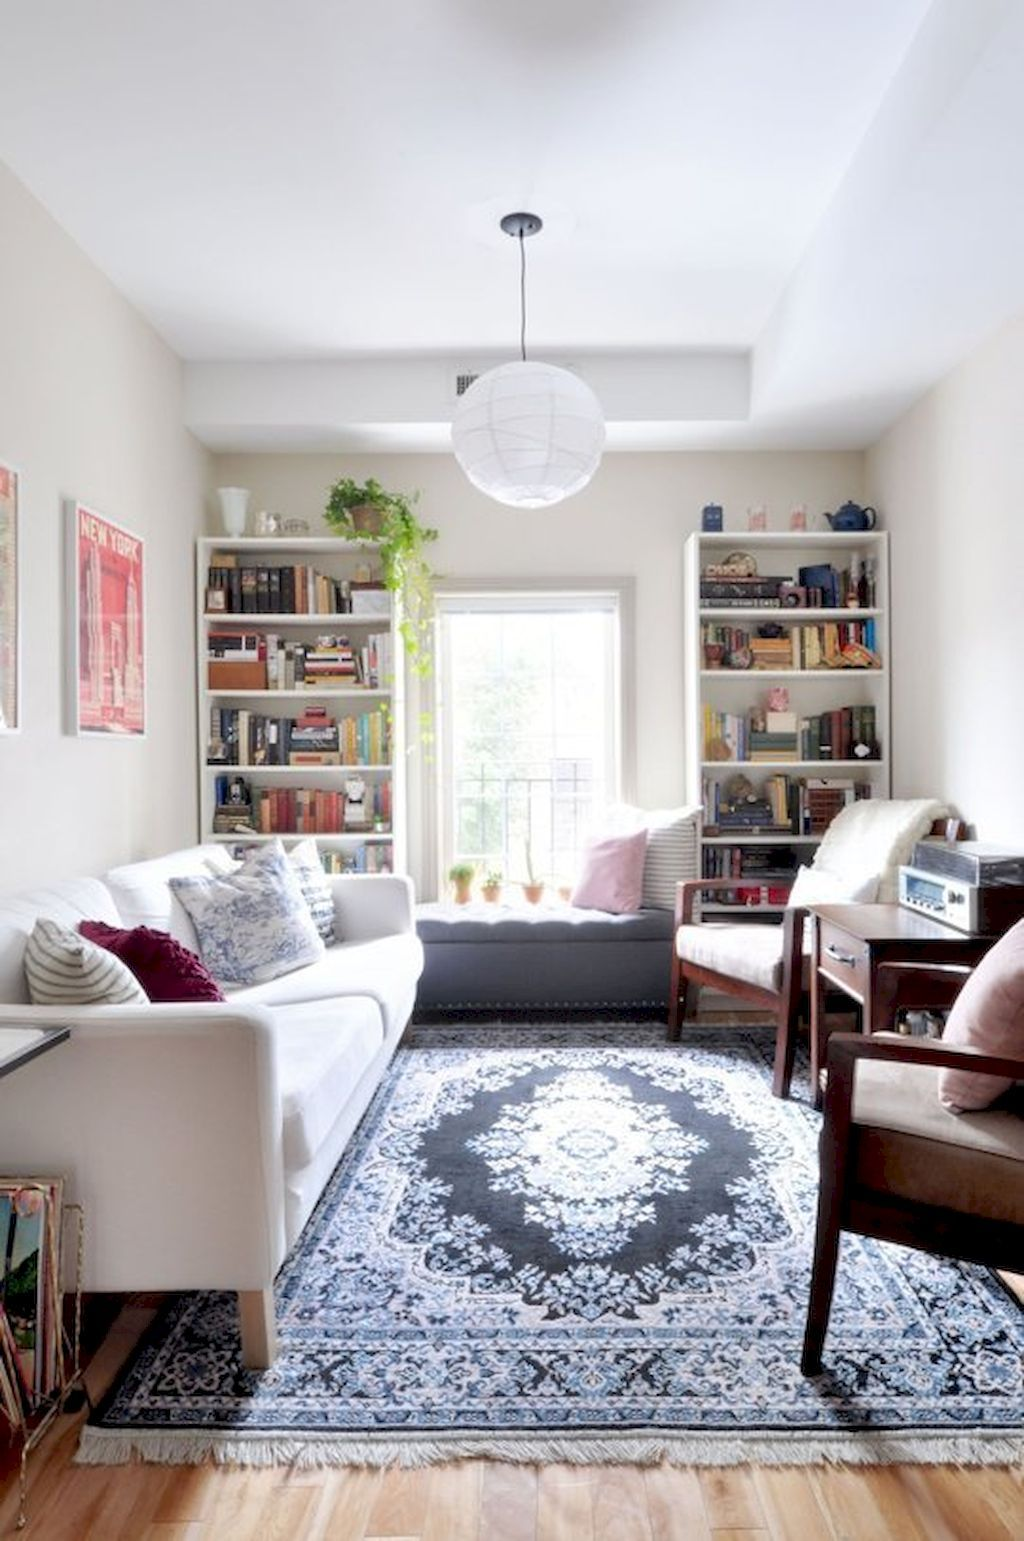 80 genius apartment organization ideas on a budget home - Living room furniture on a budget ...